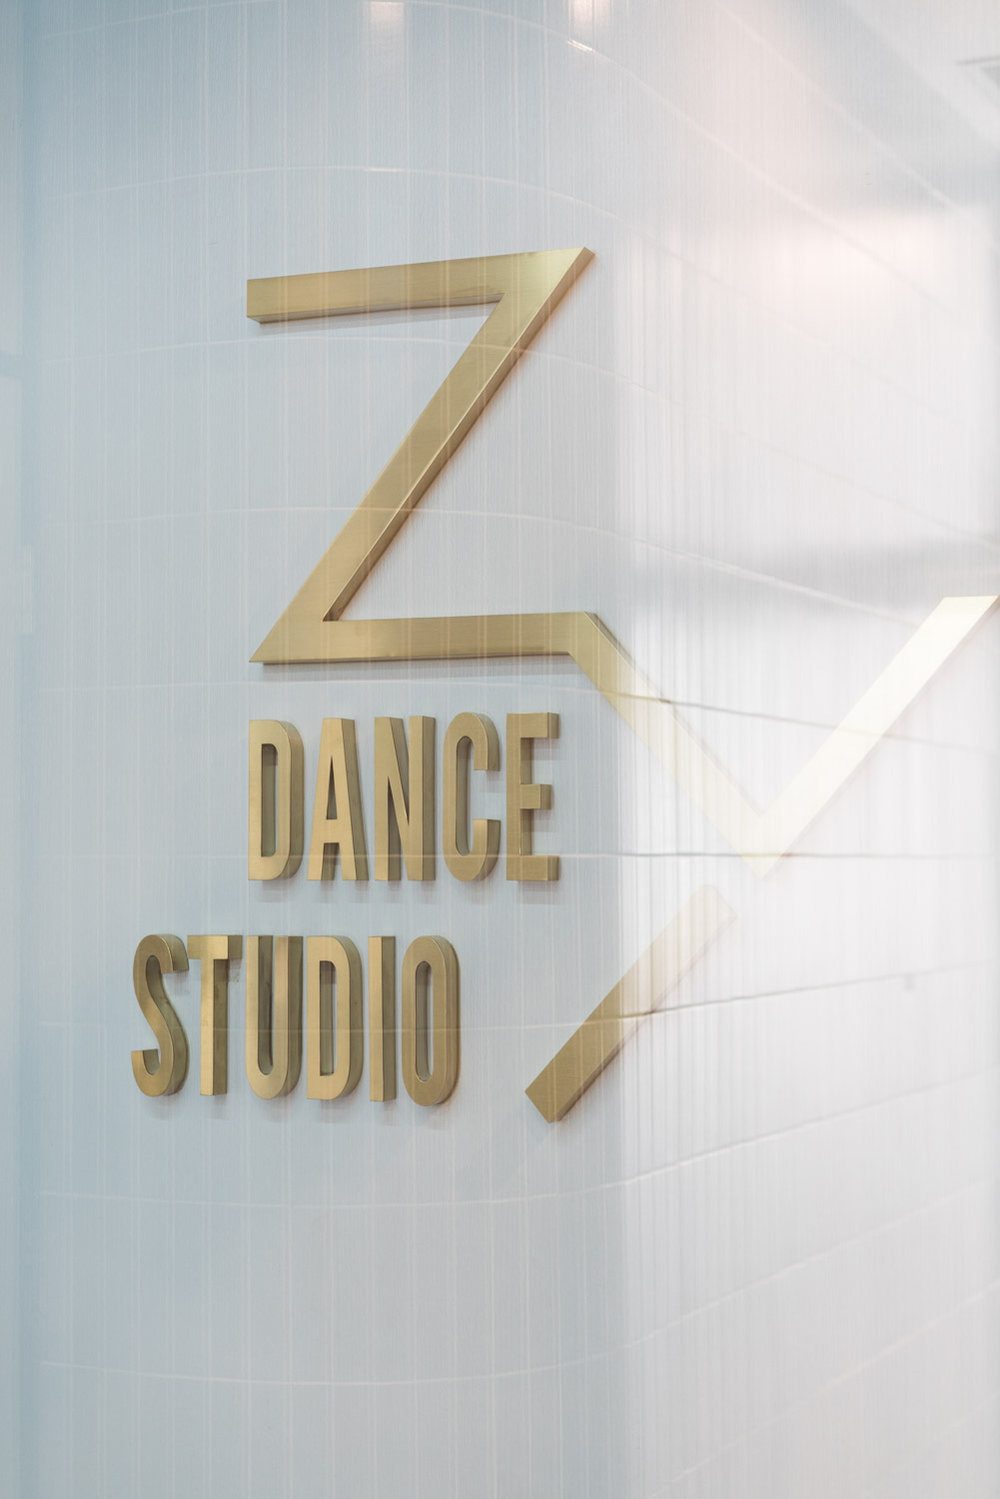 SHOOTING_PHOTOGRAPHY_INTERIOR DESIGN_DANCE STUDIO _HOSPITALITY_ZY_VICTOR MARVILLET_SHANGHAI_01.jpg